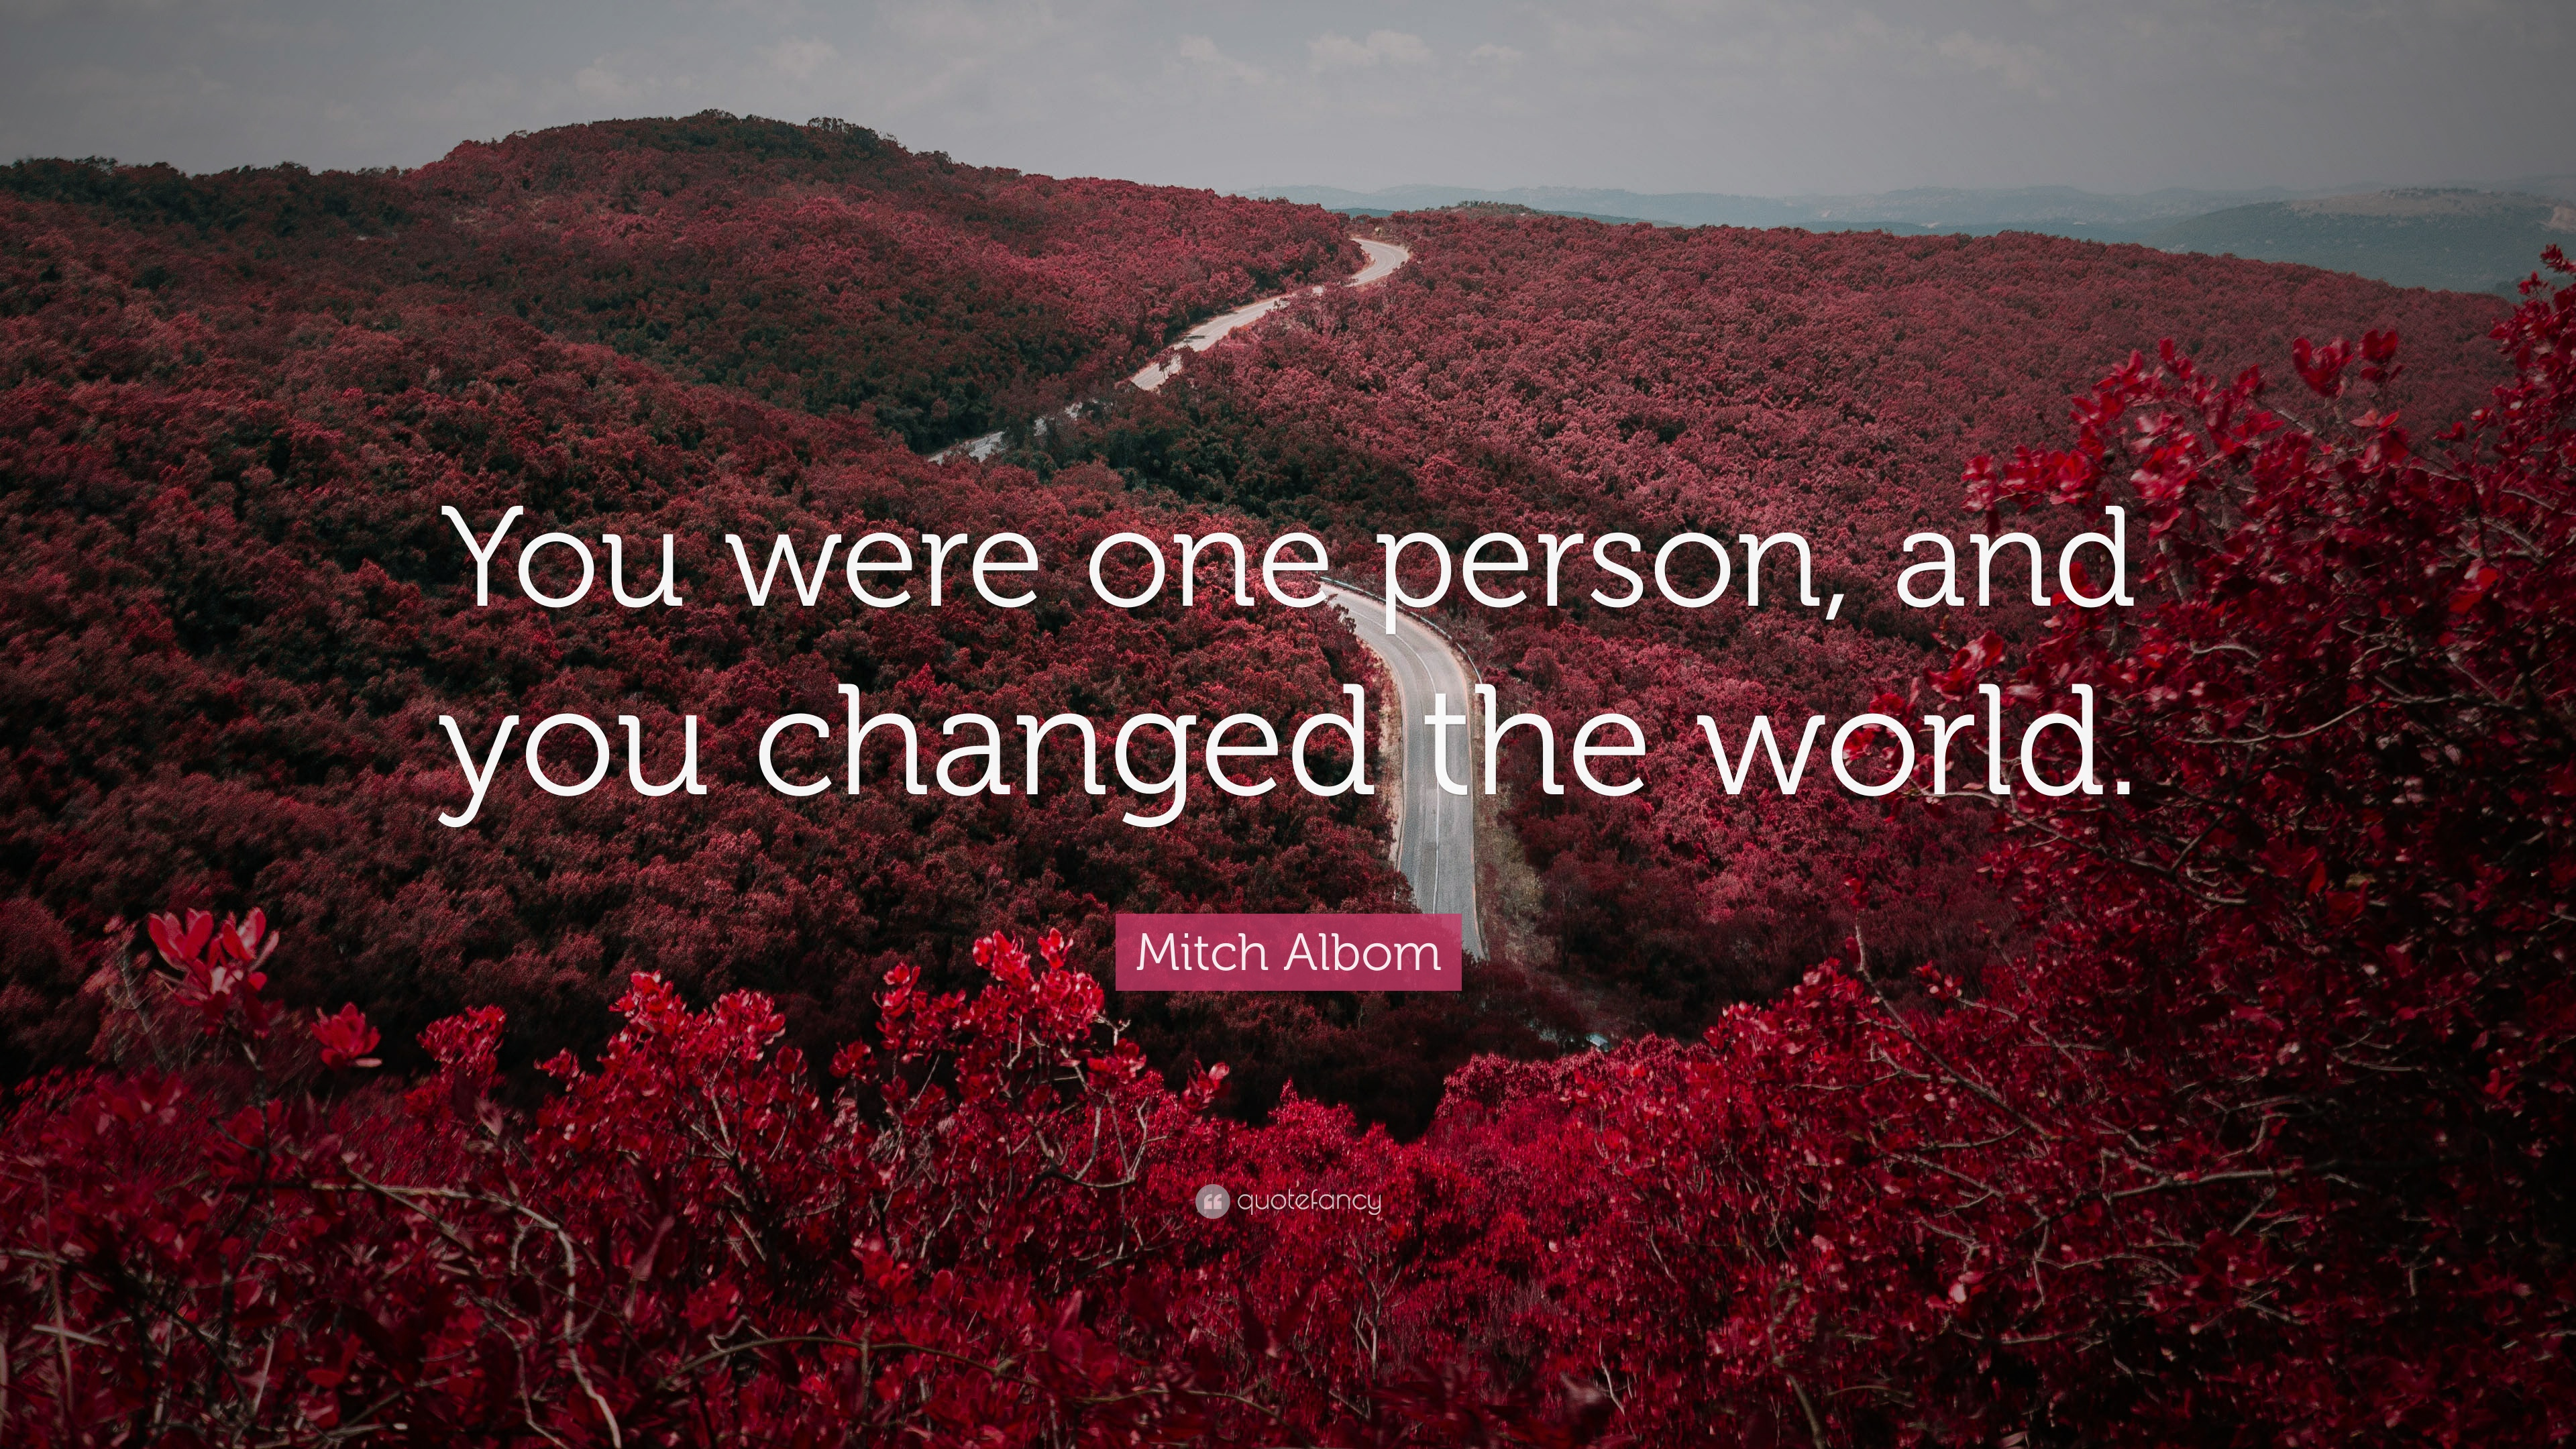 Mitch Albom Quote You Were One Person And You Changed The World